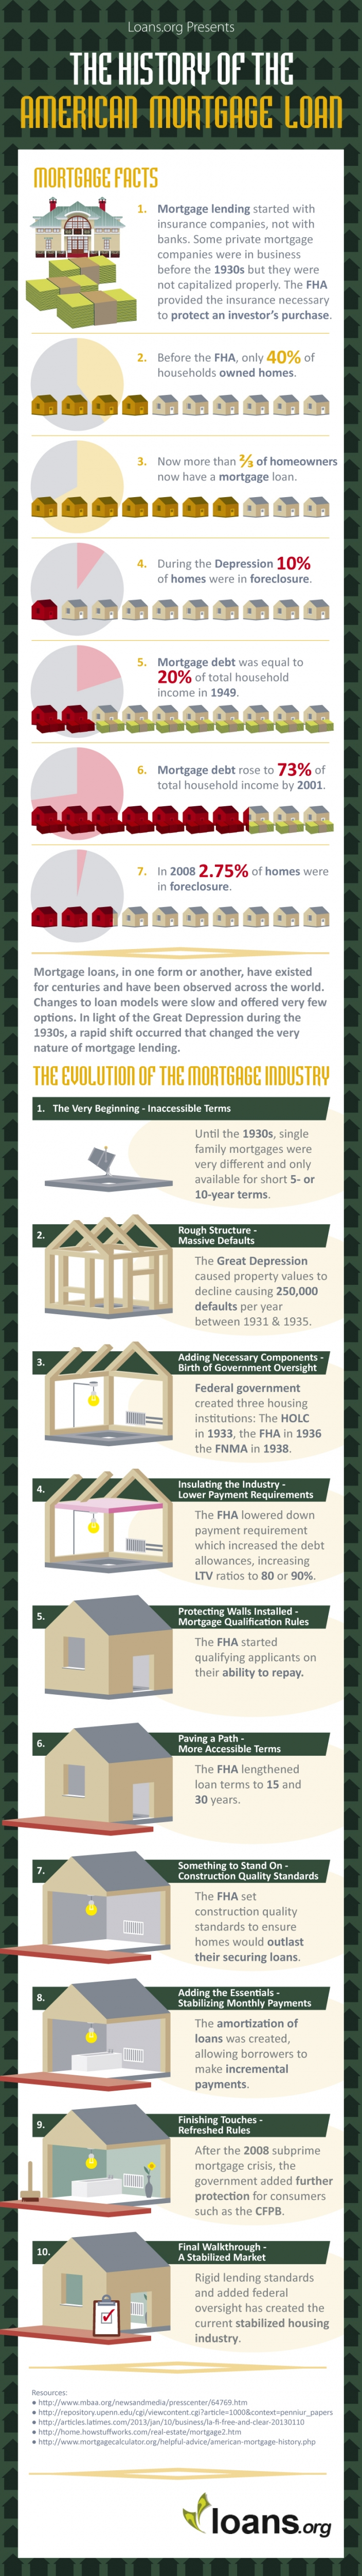 The History of the American Mortgage Loan